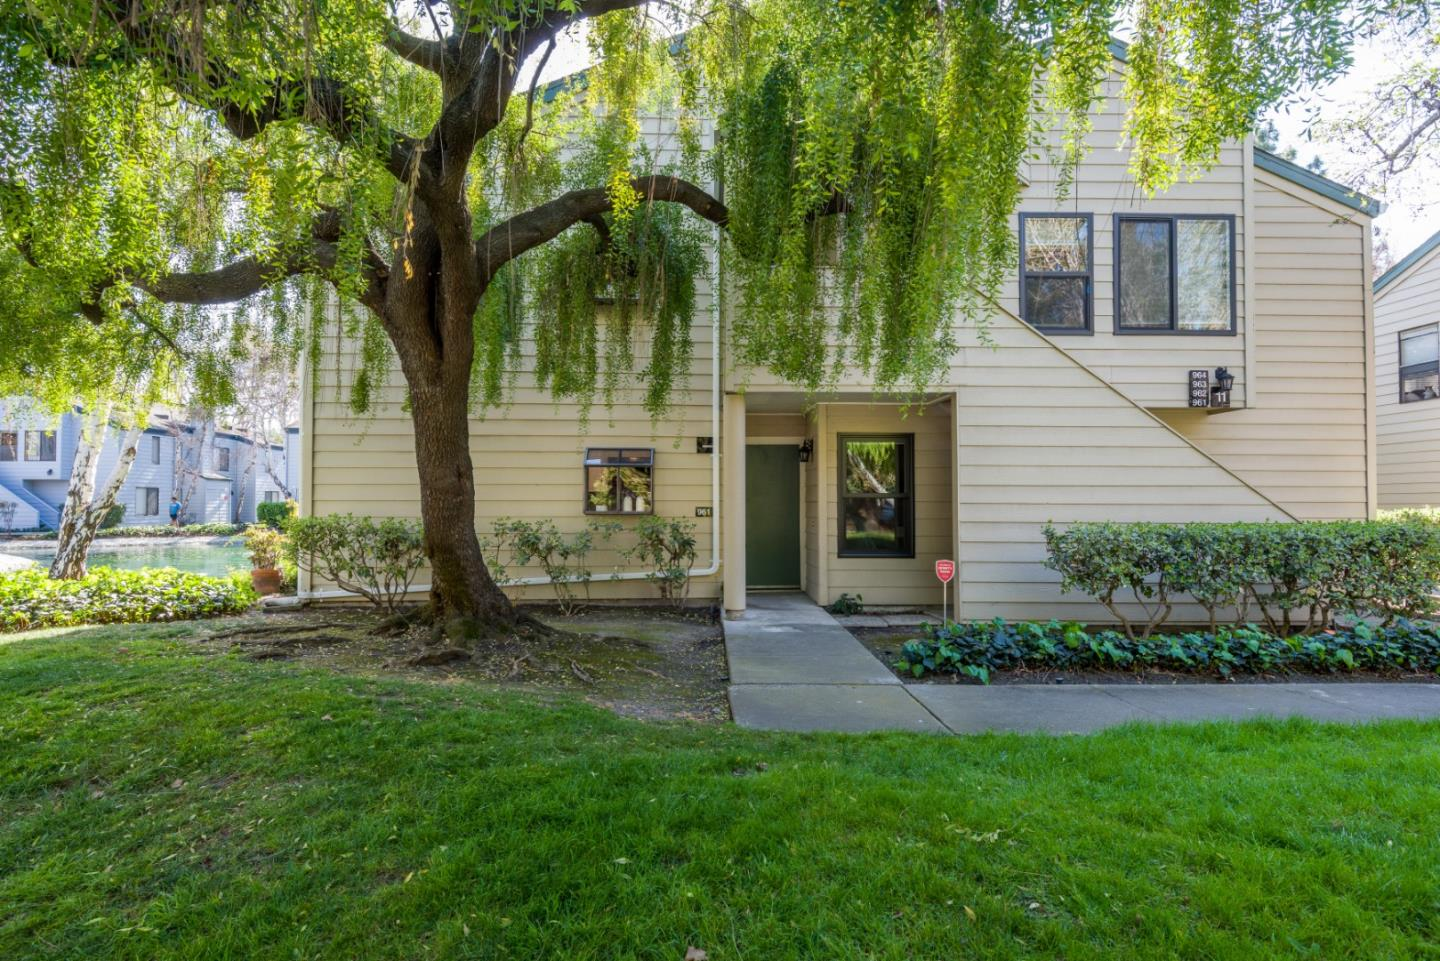 W Middlefield Rd, Mountain View, CA 94043